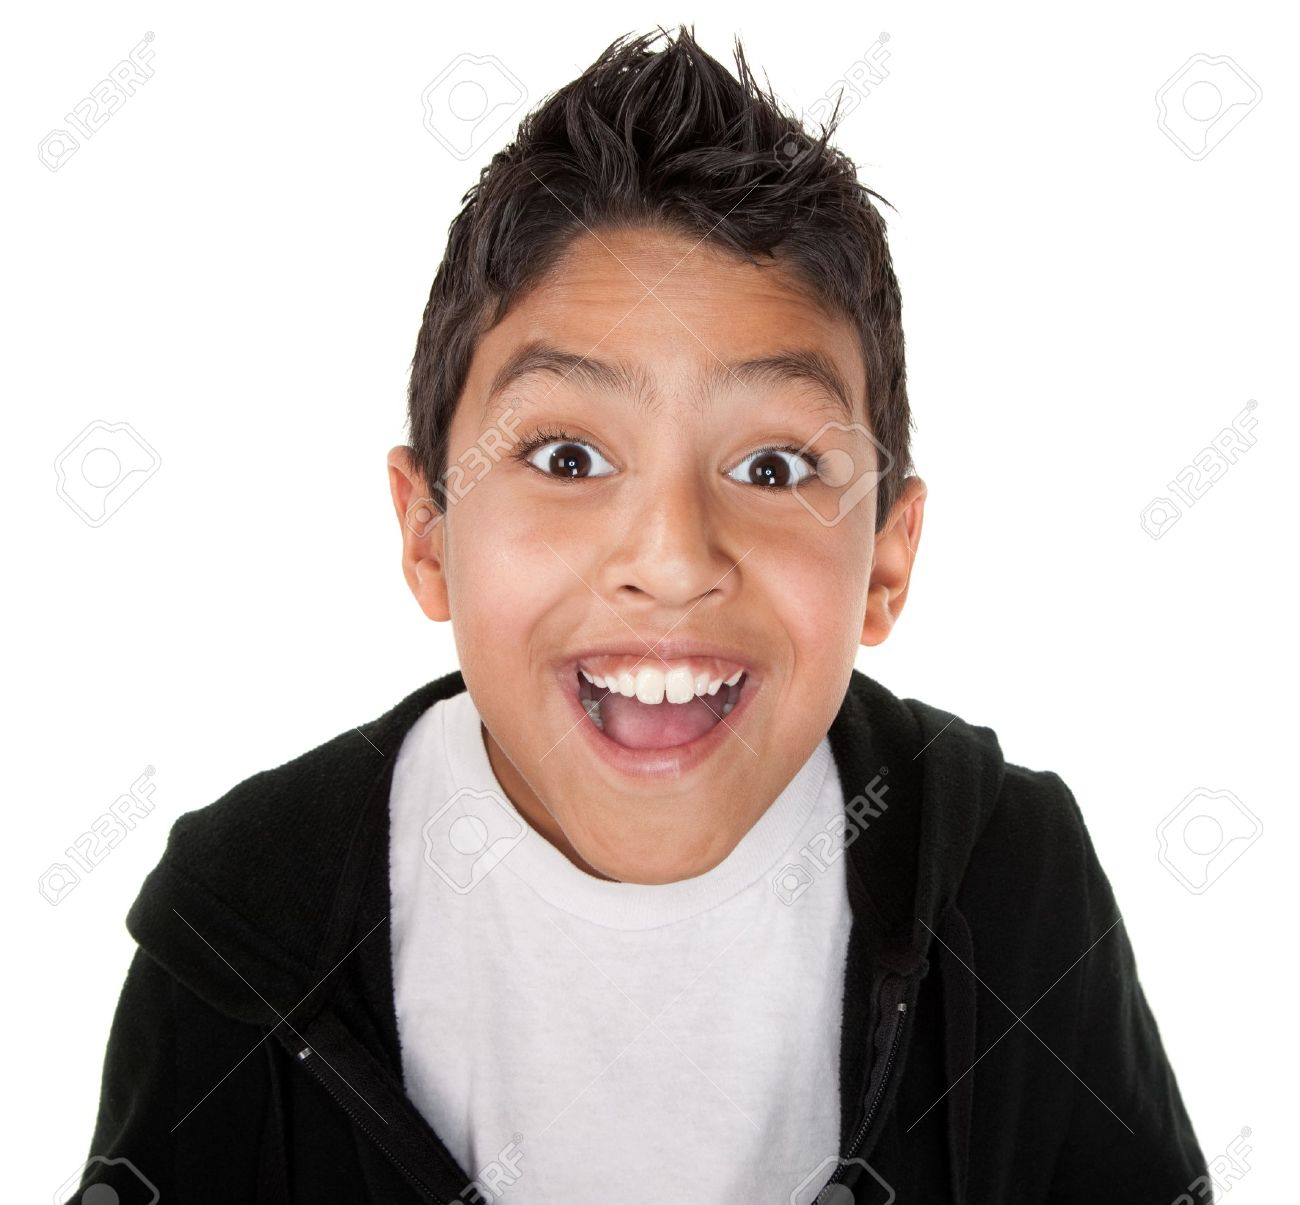 Cute boy with a smile on a white background Stock Photo - 8924339